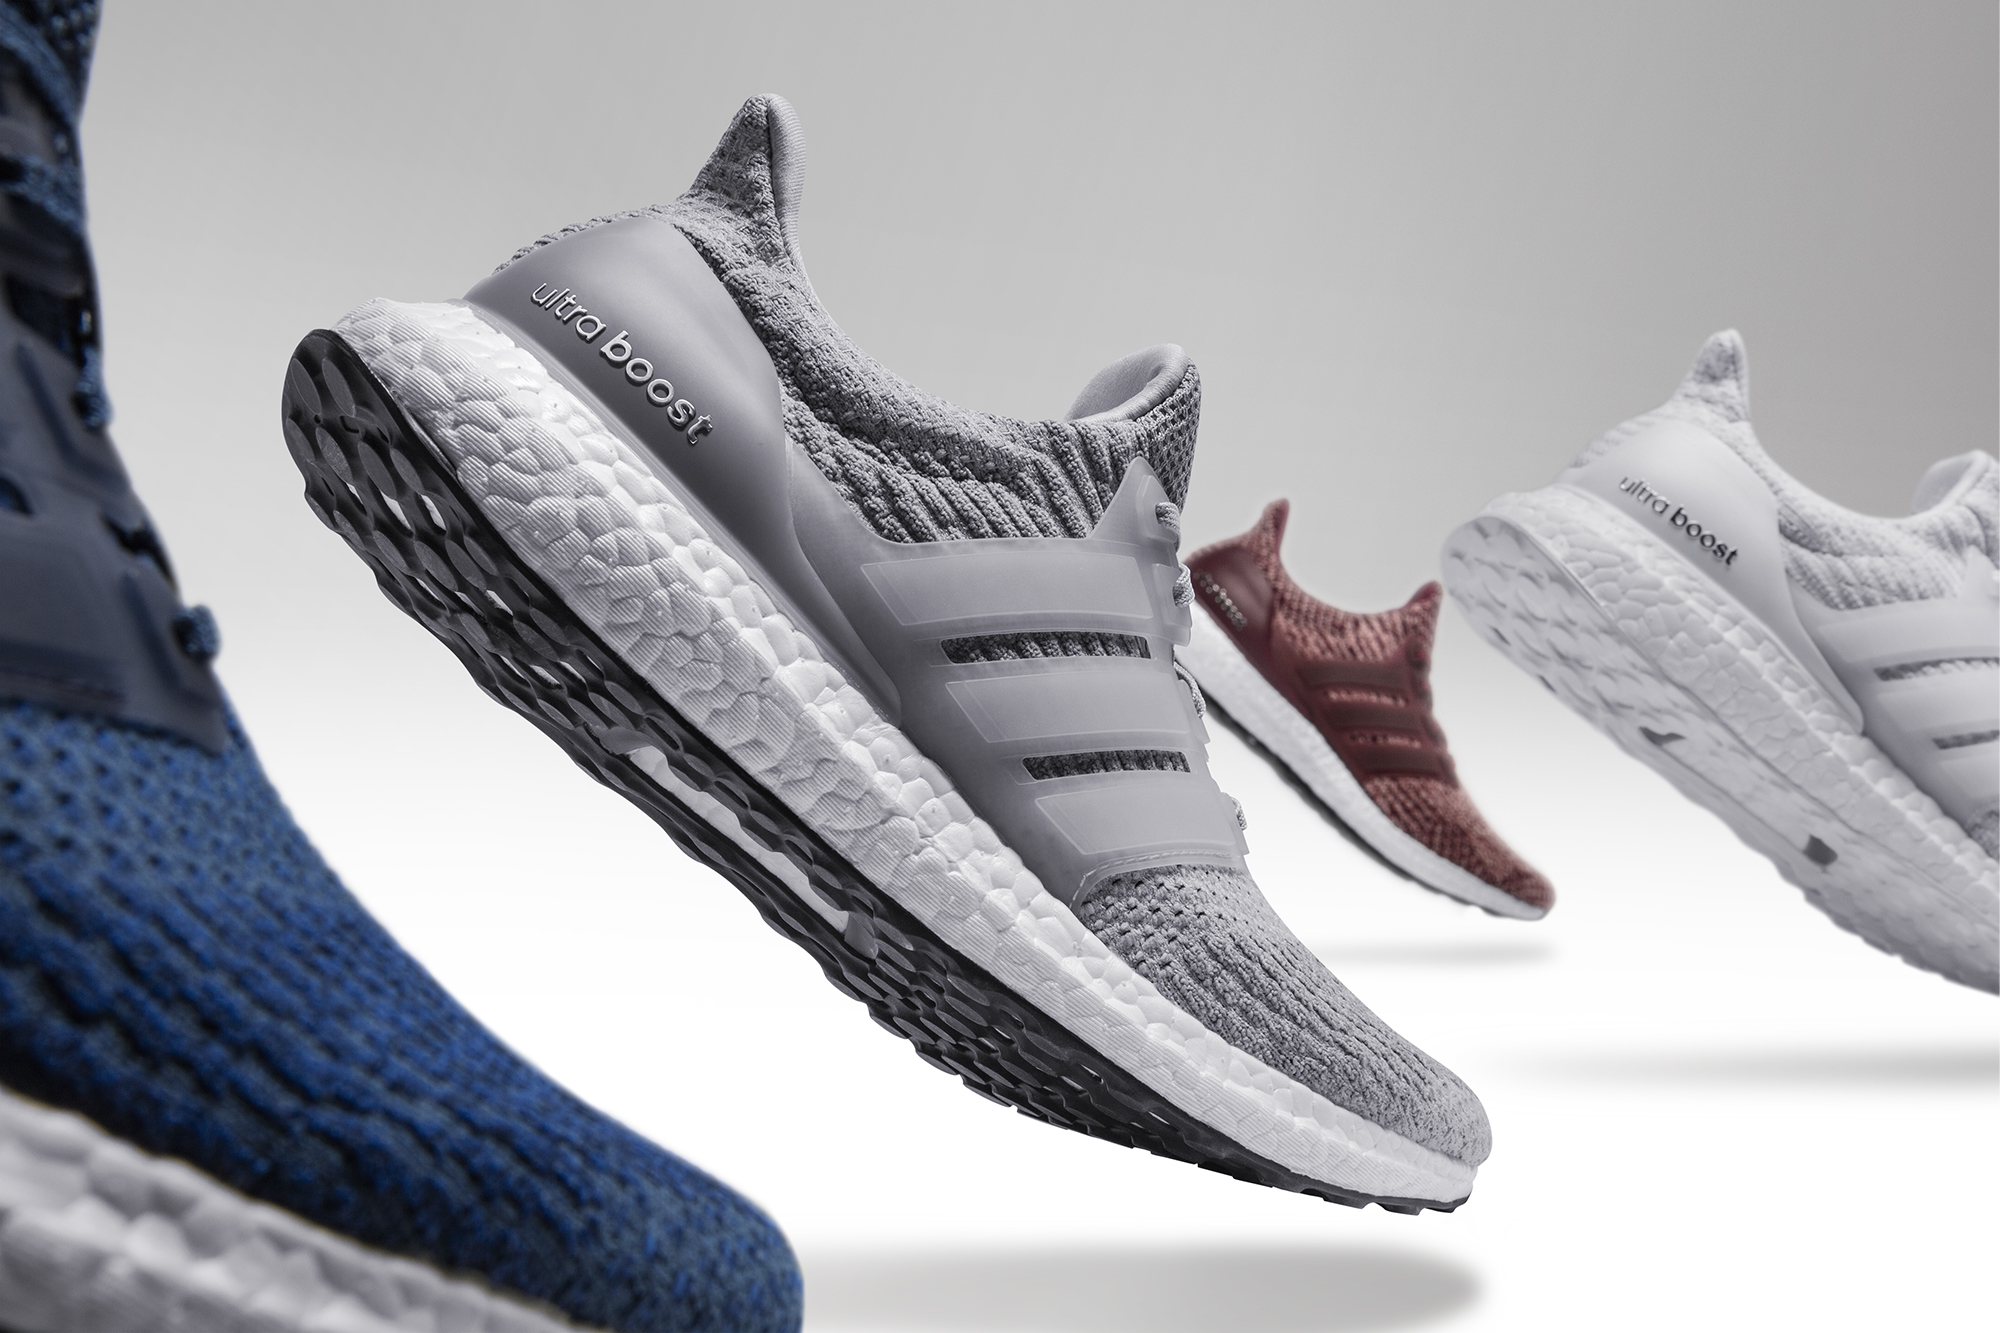 adi_ultraboost_dec_pr_mens_04